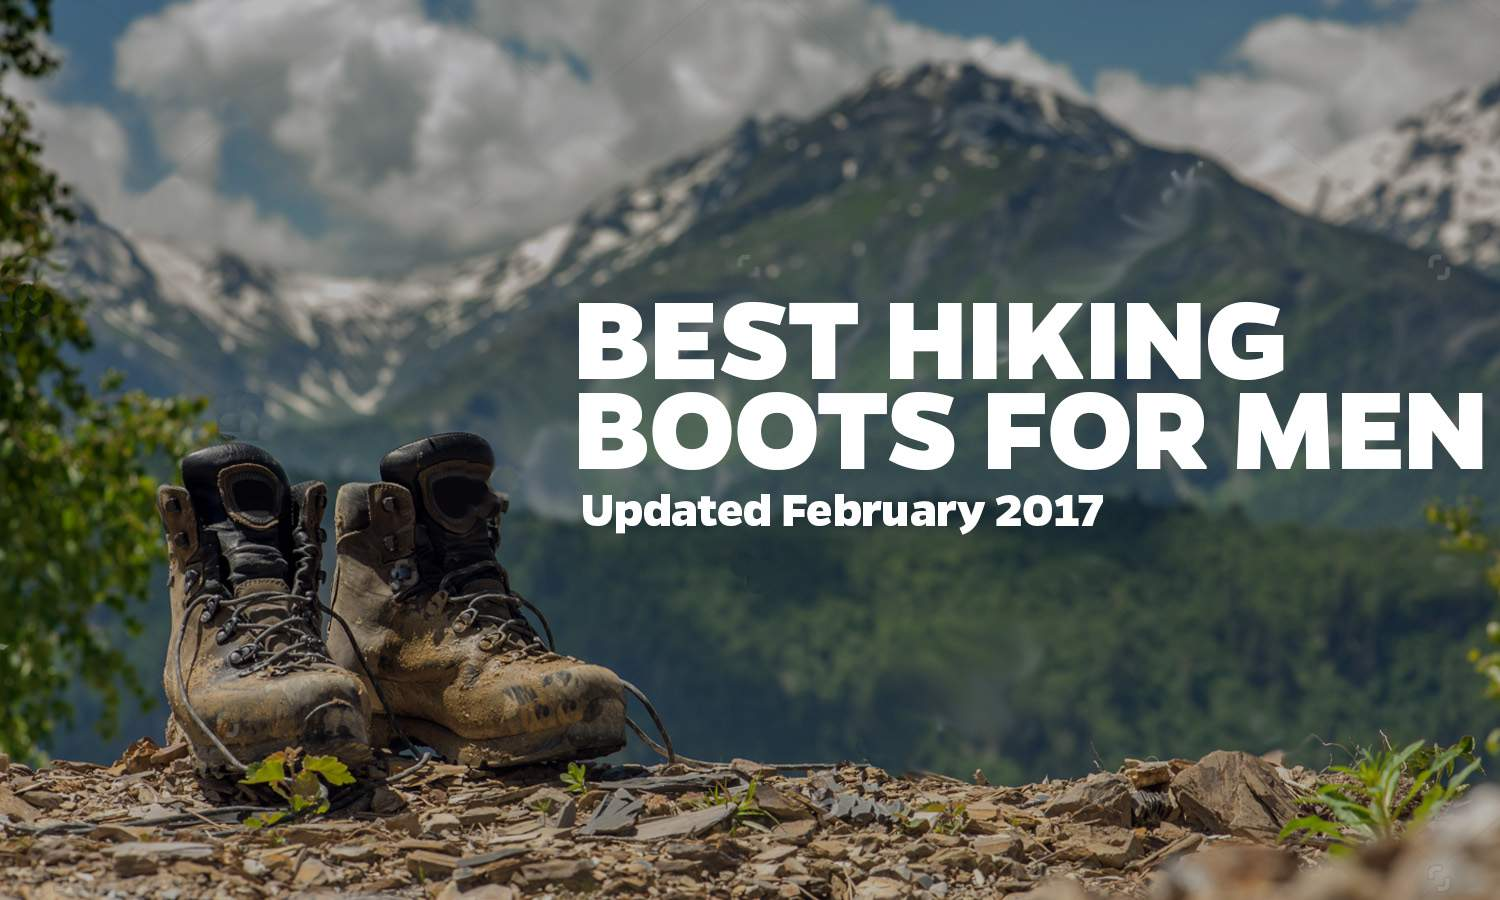 Best Hiking Boots for Men 2017 Cover